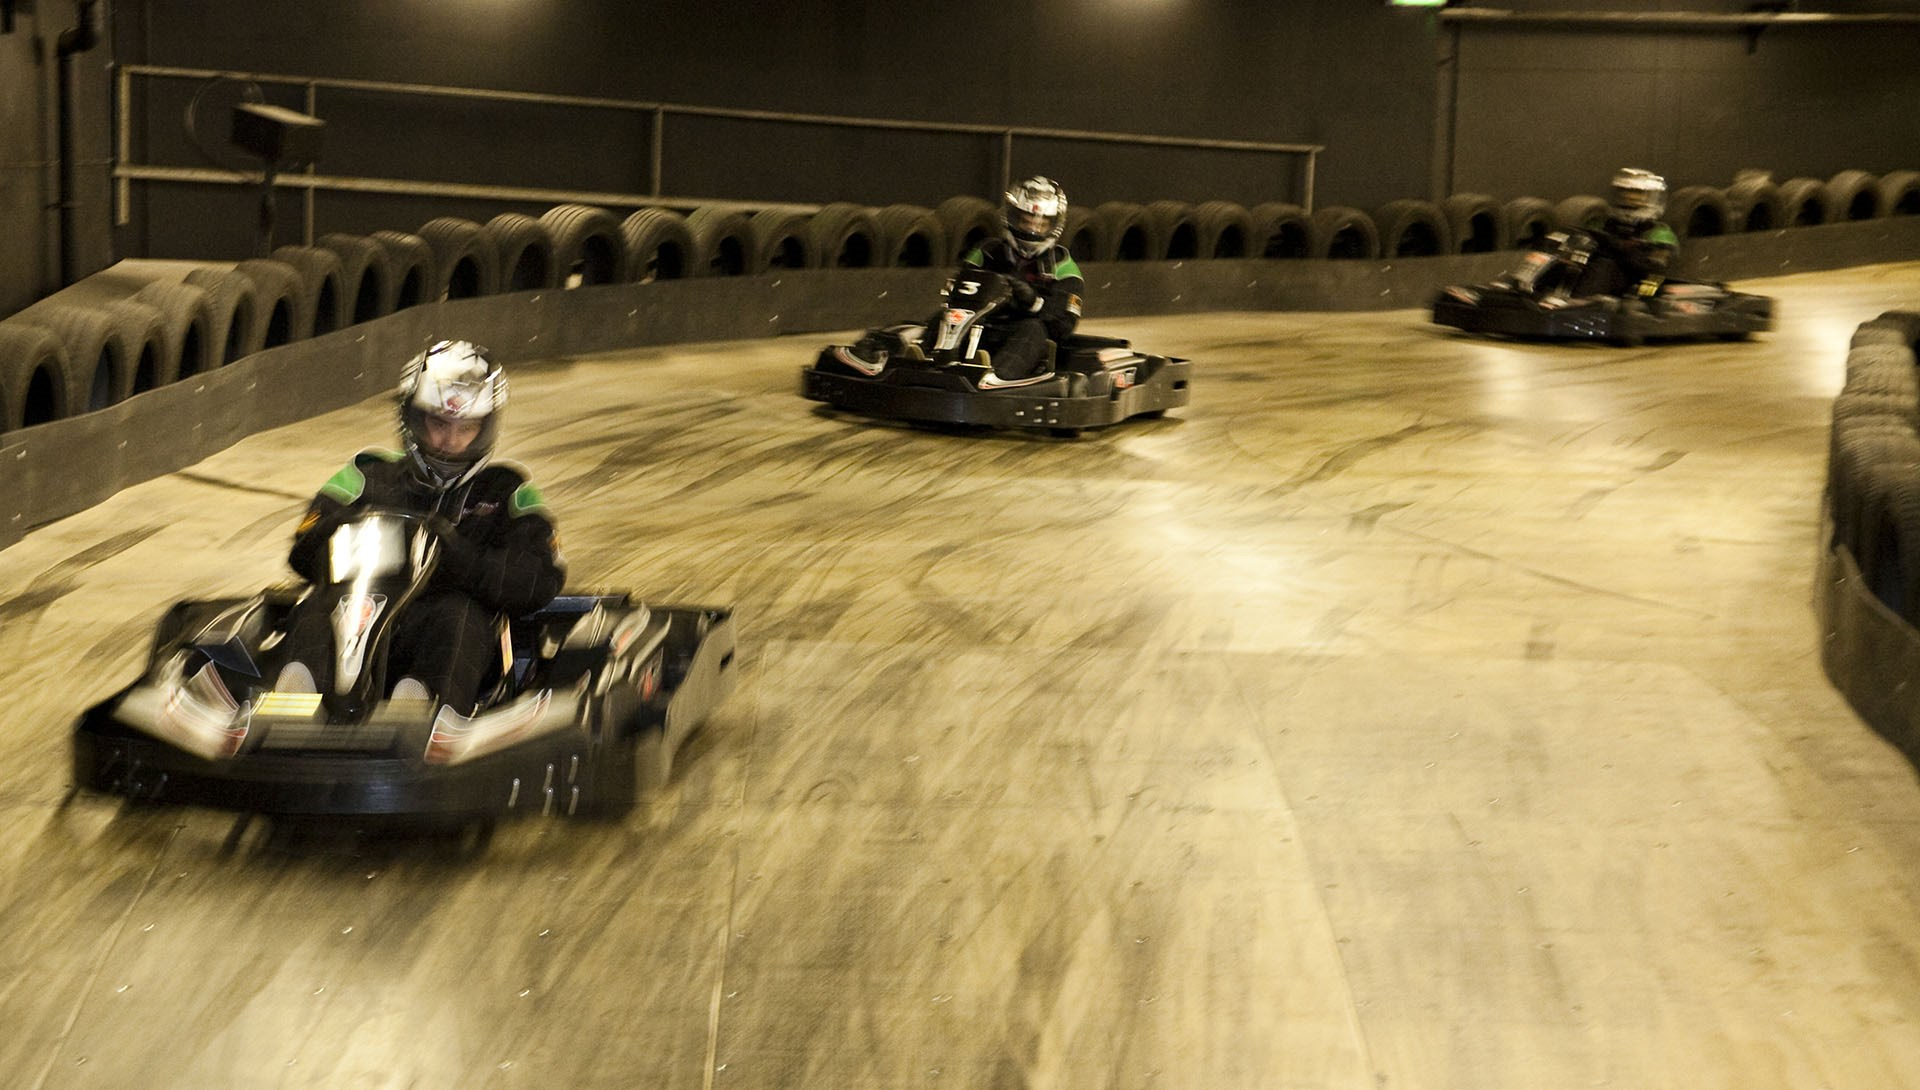 TeamSport_Gallery_Go_Karting_London_Tower_Bridge_1920x1090-min_3.jpg